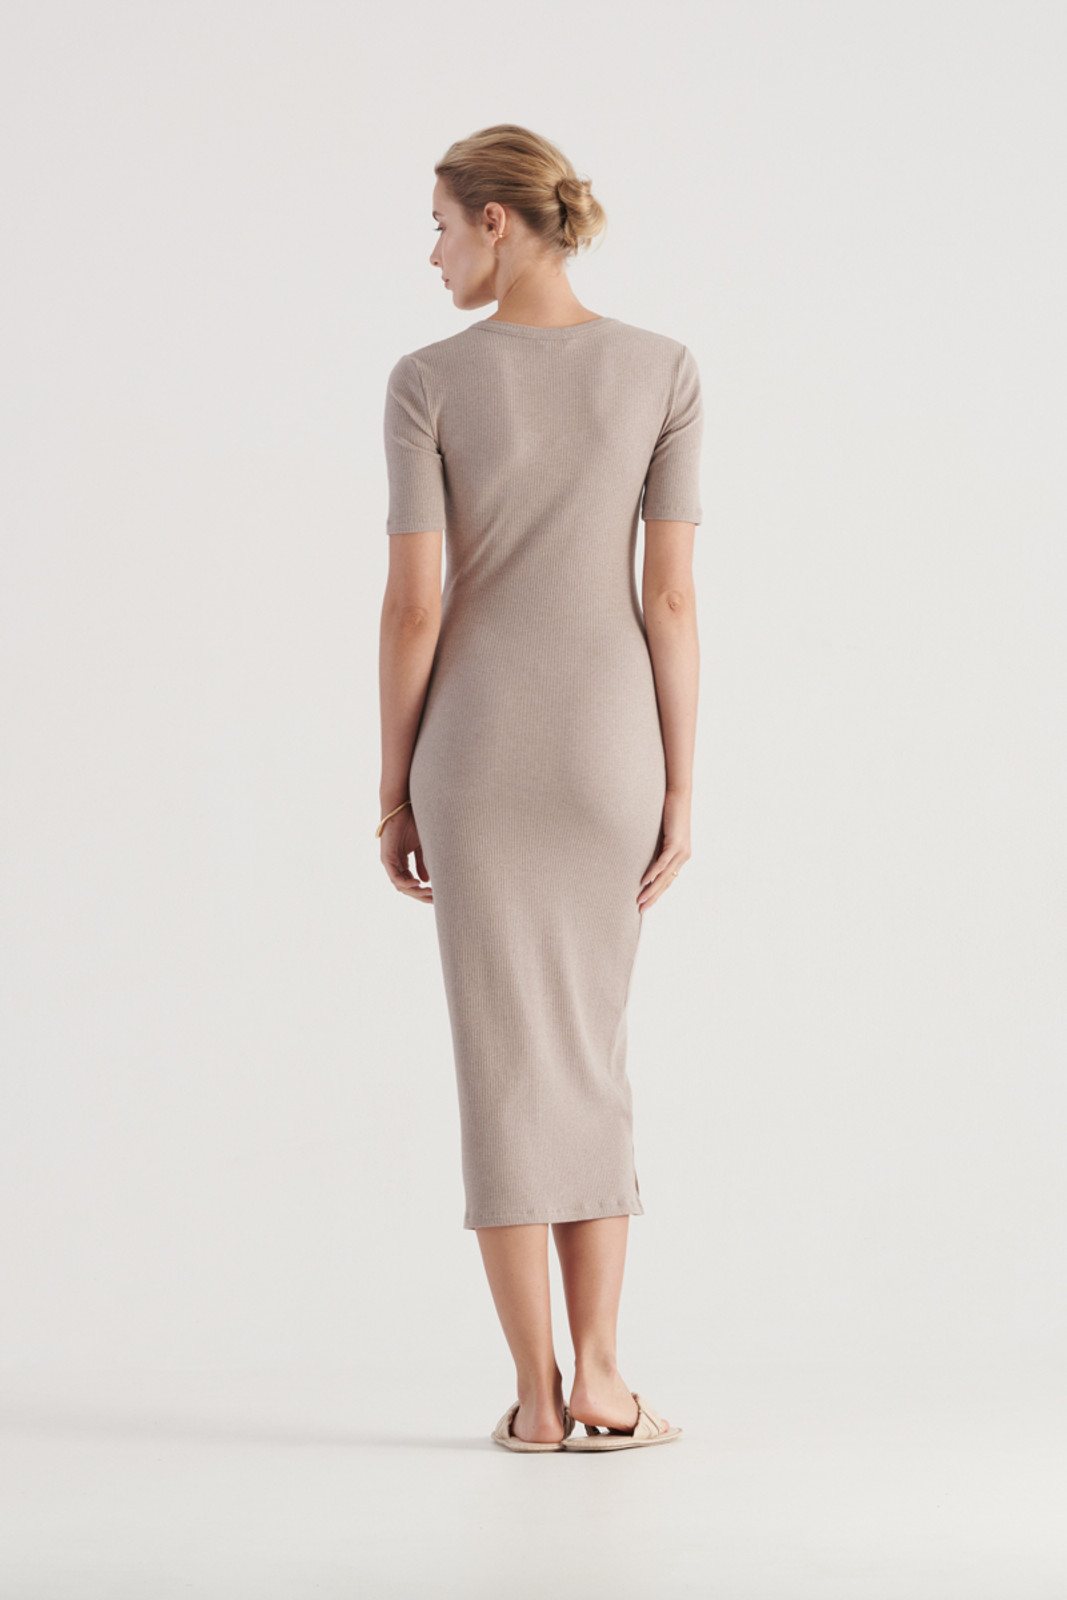 Elka Collective WomensHadley Dress Taupe Marle  2